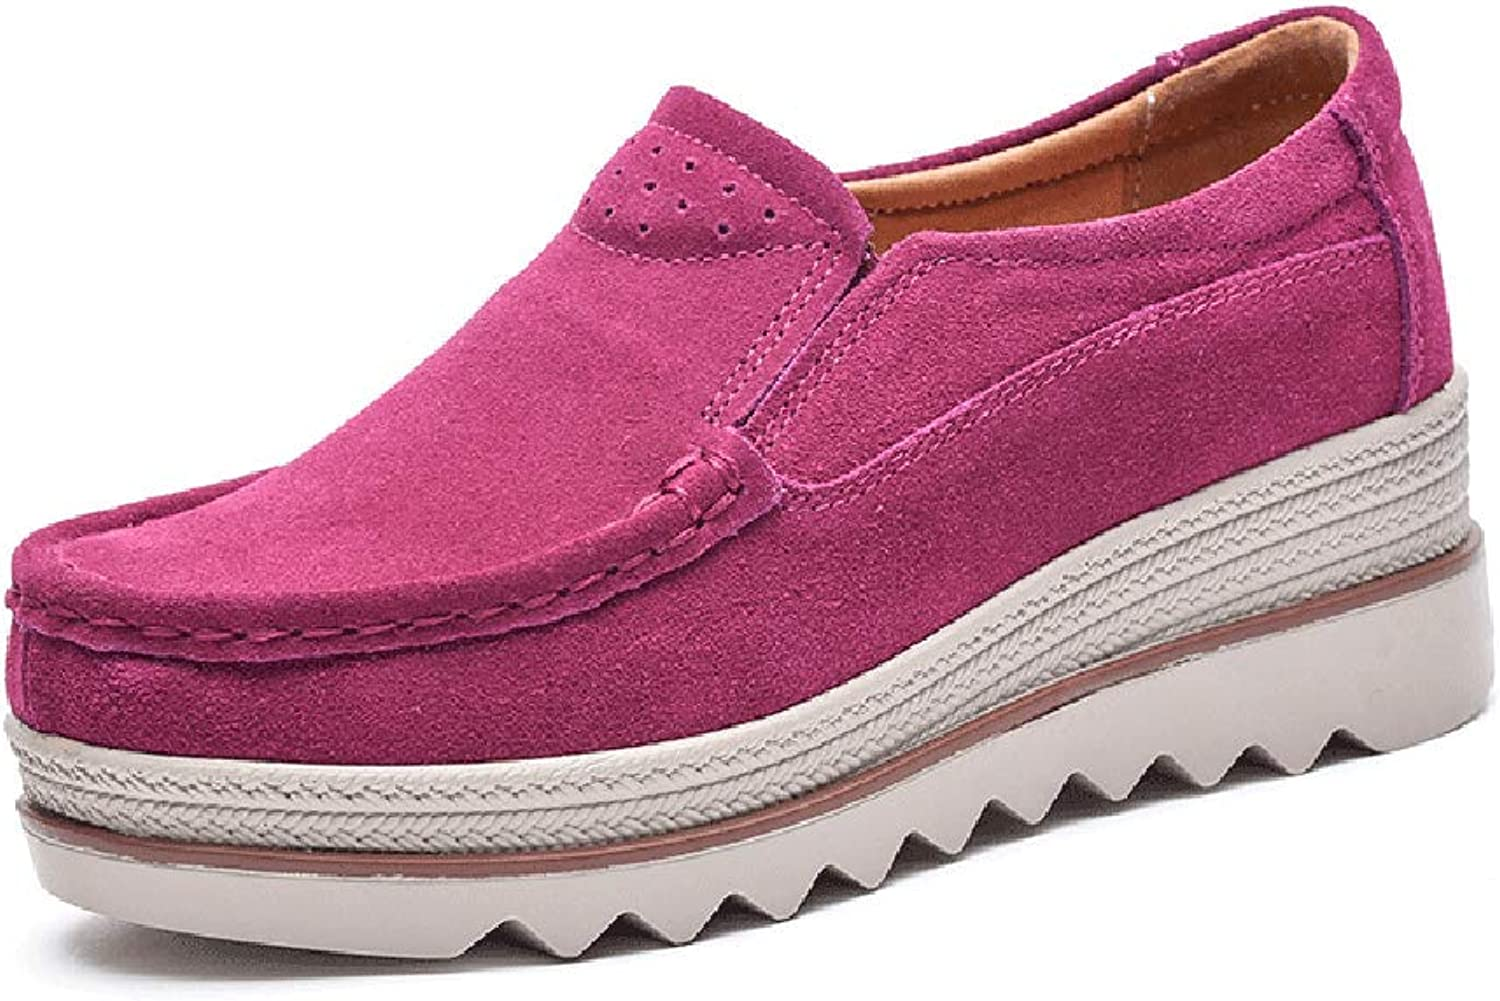 Ruiatoo Women's Leather Platform Slip on Loafers Comfort Moccasins Low Top Casual shoes pink 39